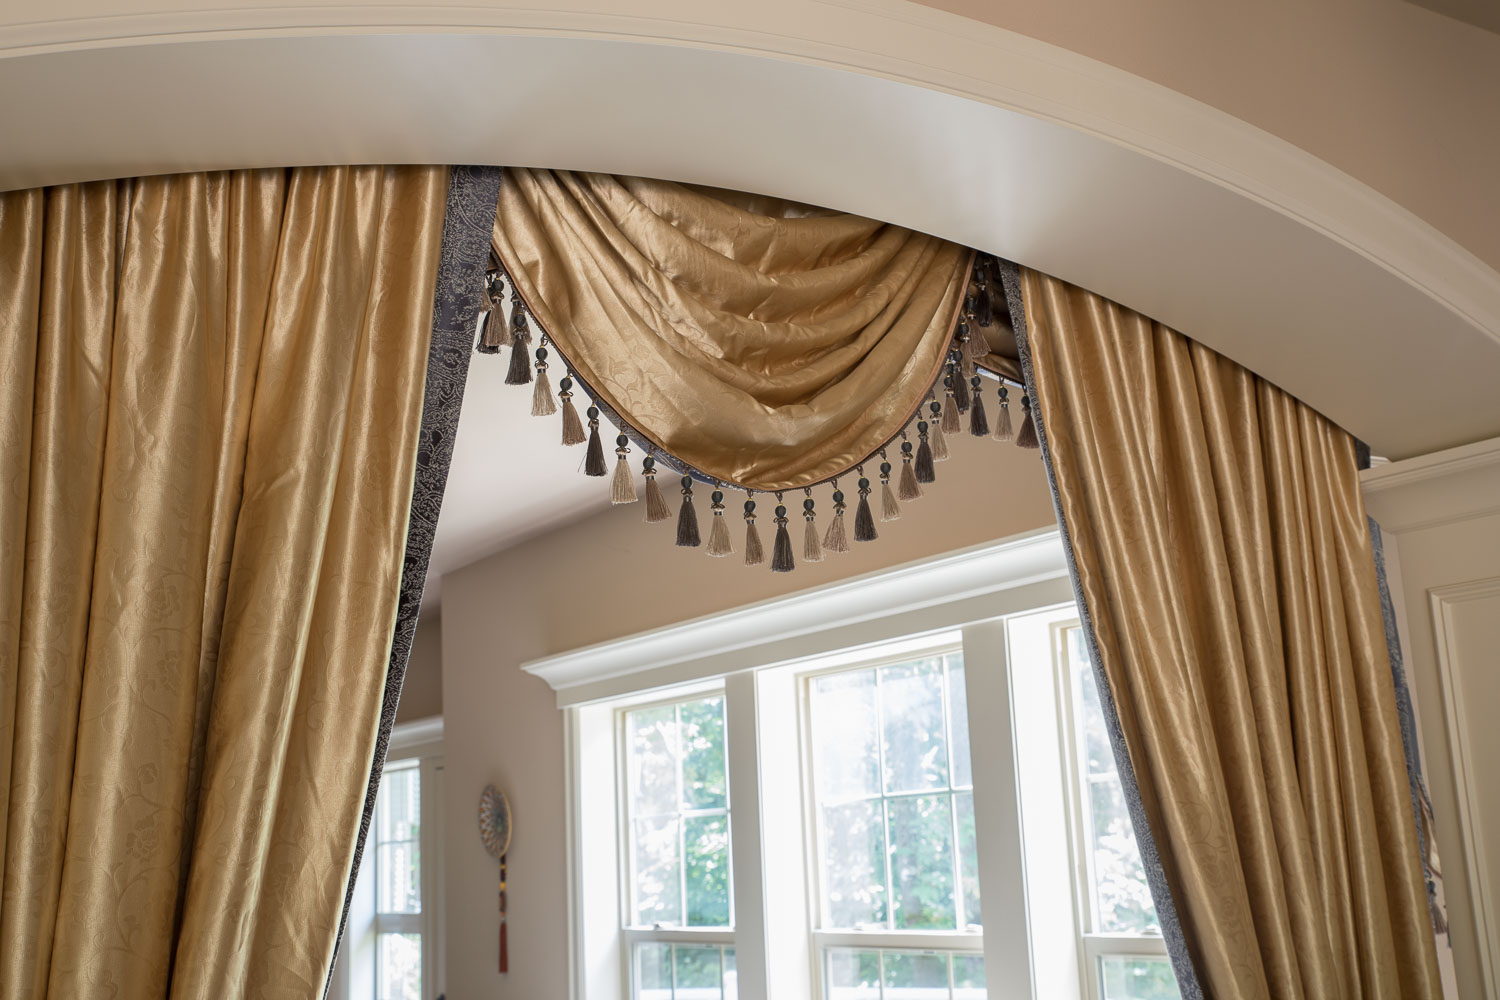 Classic Overlapping Swag Valances Curtain Drapes Gray Blue